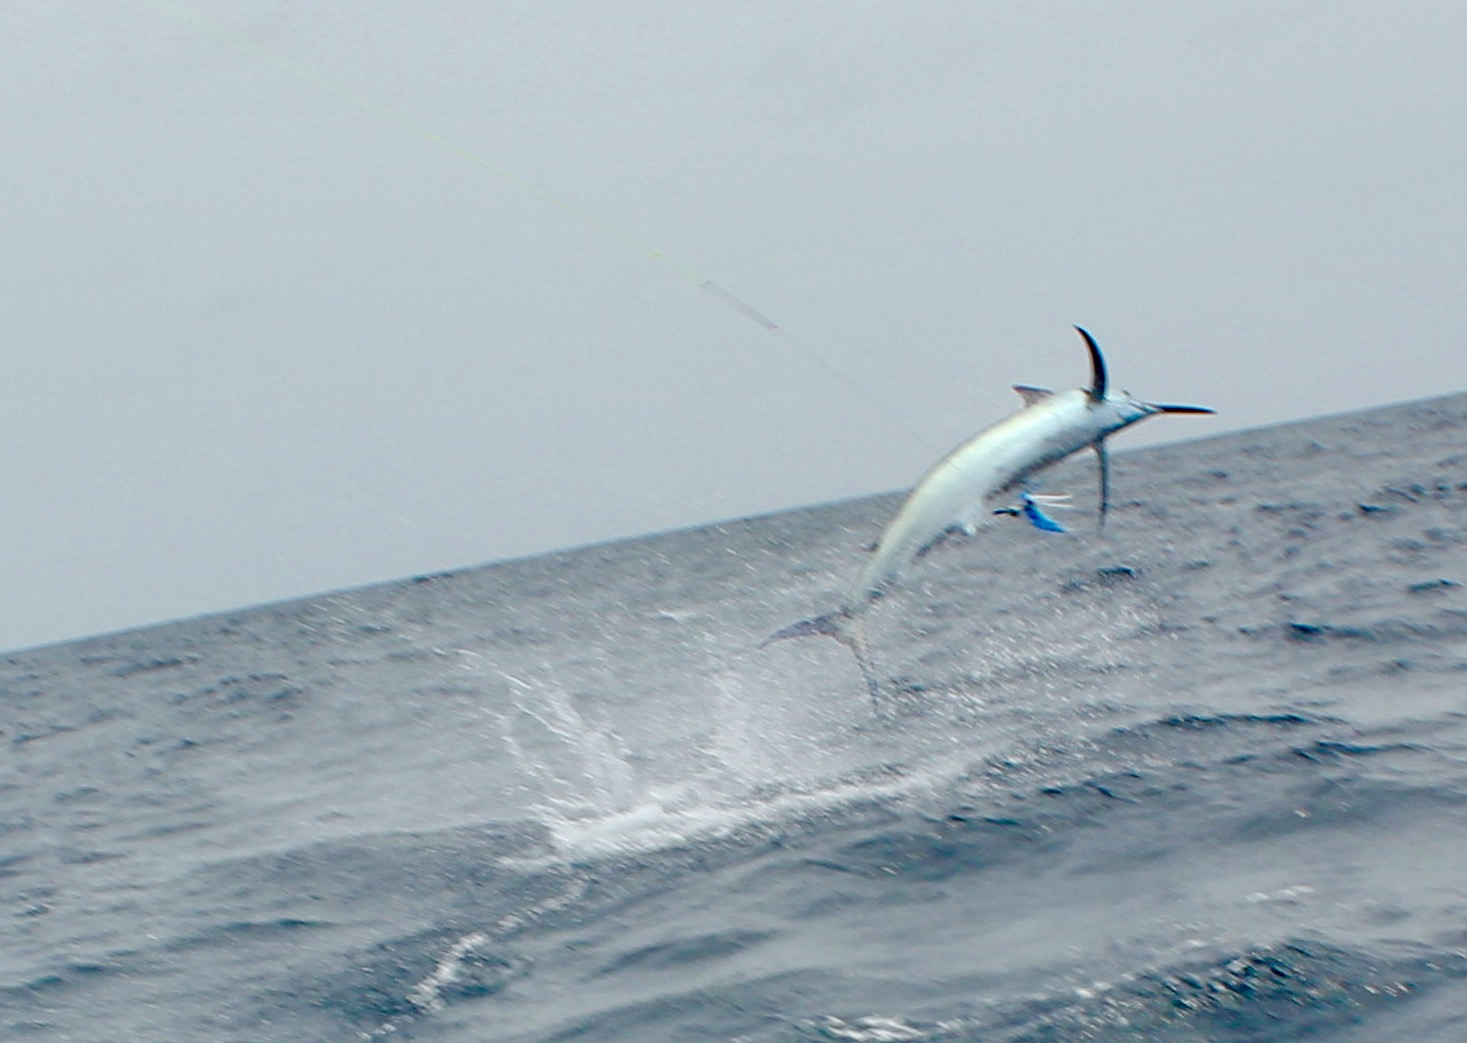 Jumping Black Marlin